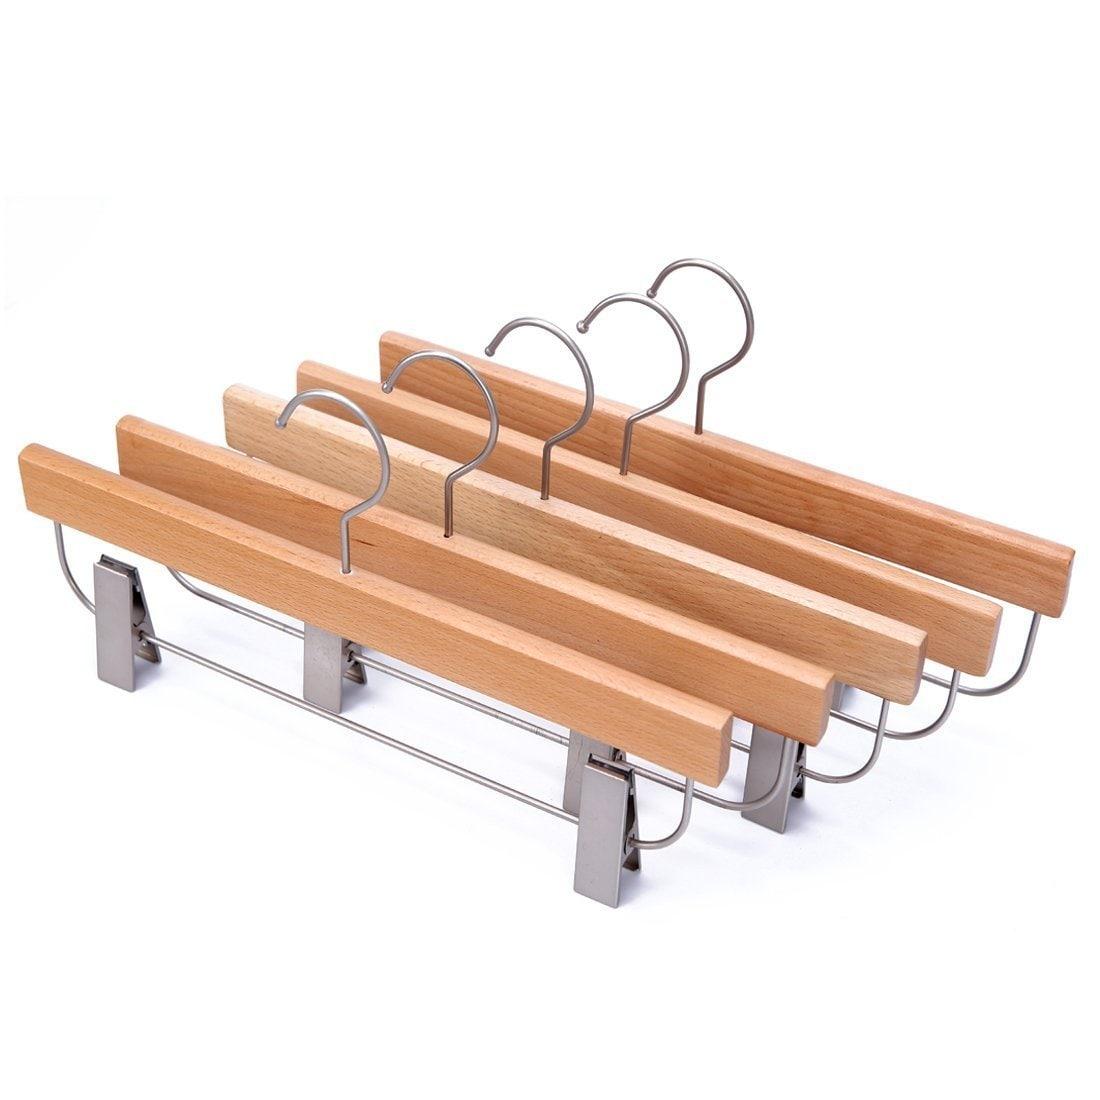 J.S. Hanger Wood Skirt/Pants Hangers with Clips (5-pack) ...